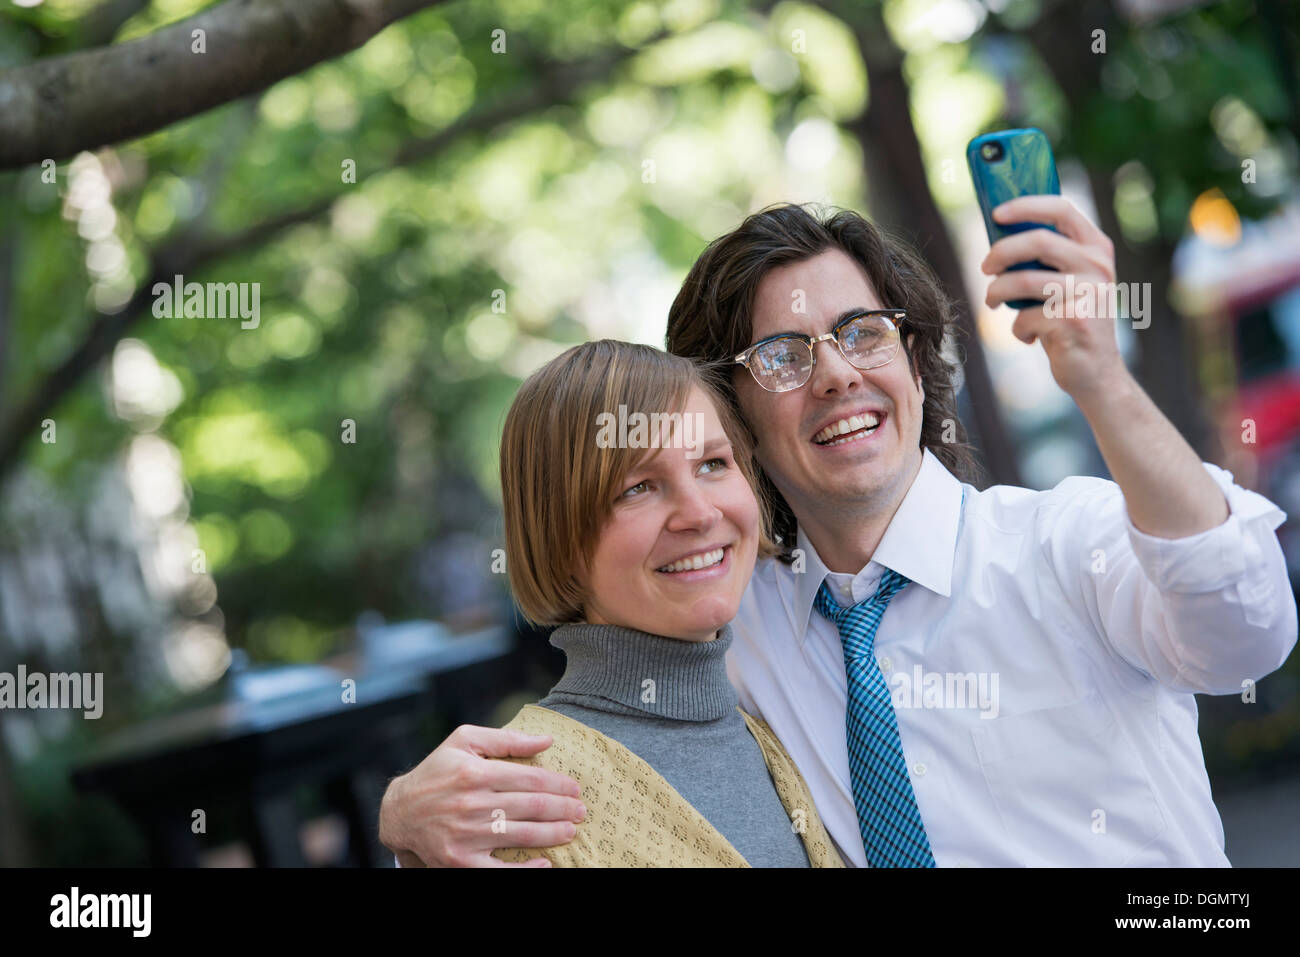 City. Two people, a man and woman outdoors, side by side posing for a photograph using his smart phone. Stock Photo